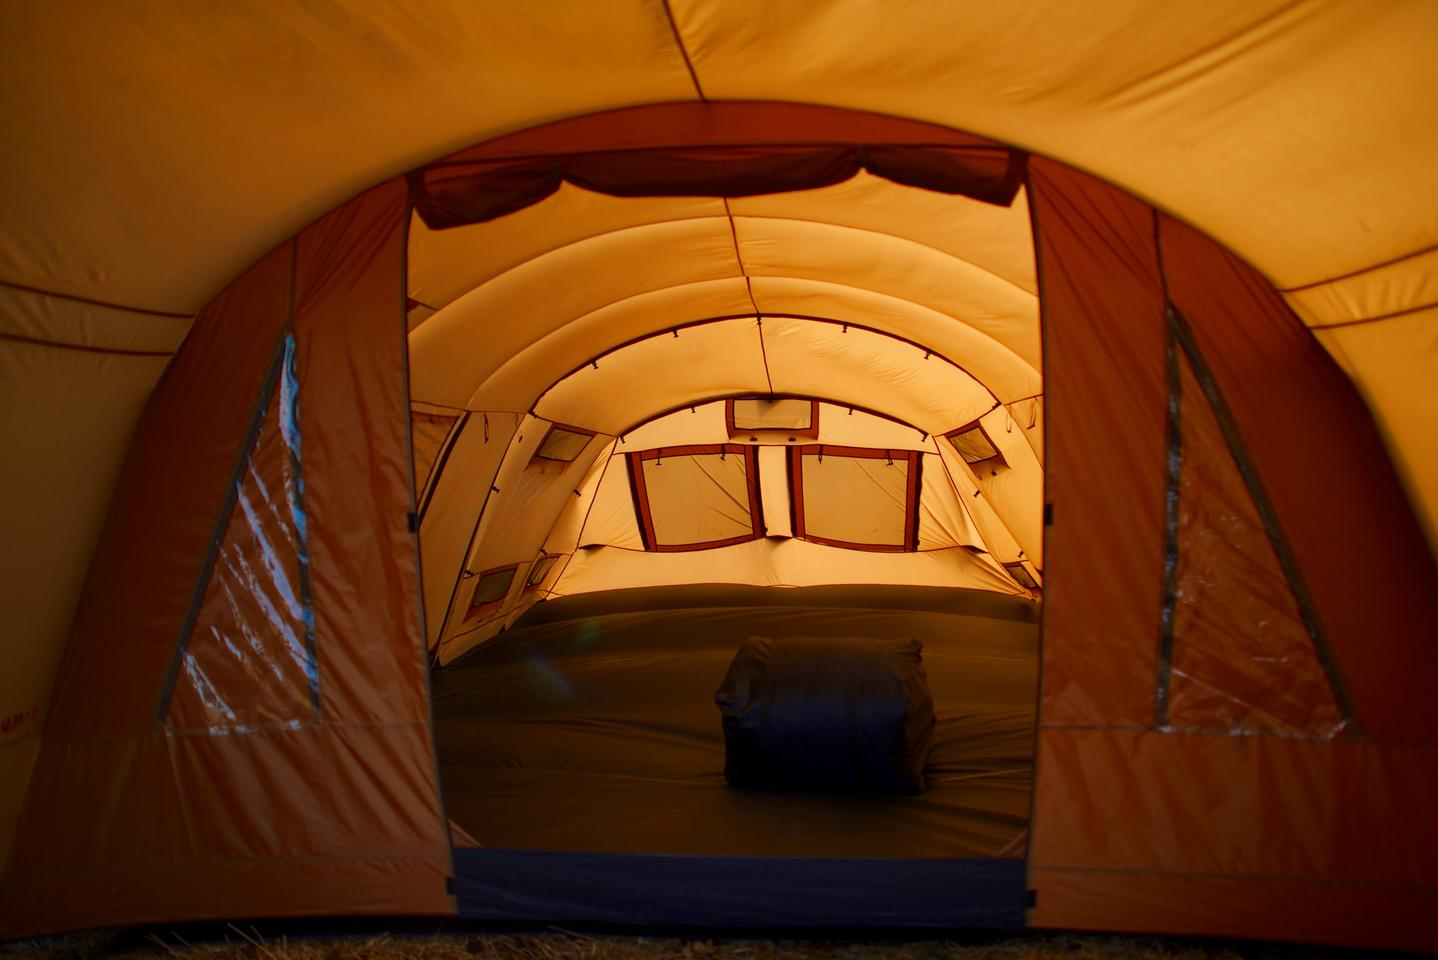 The Thermo Tent consists of a semi-traditional outer tent and an inner tent that hangs inside